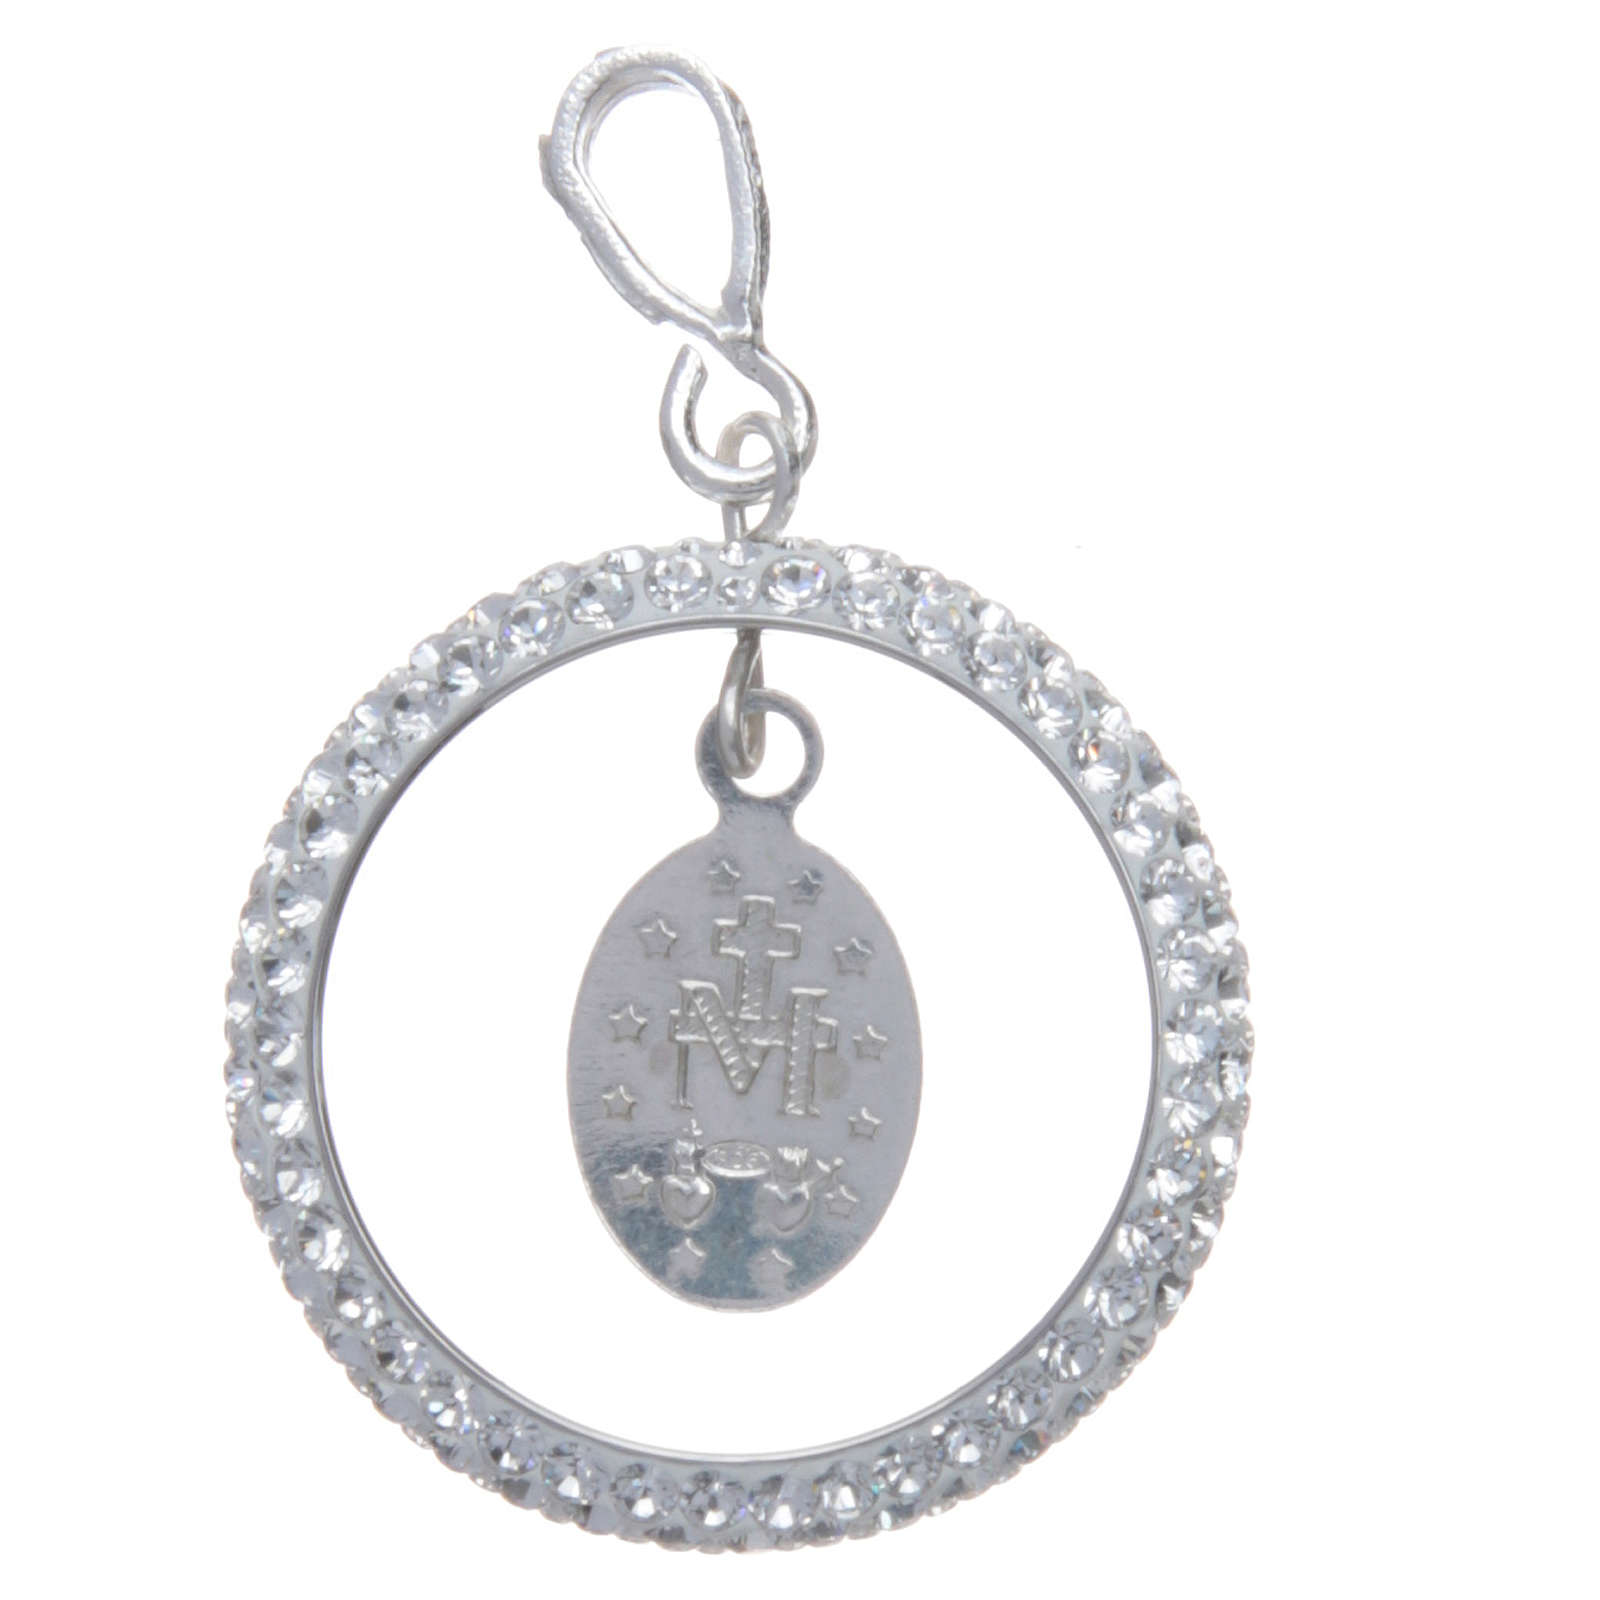 Charm With Sett Ring And Miraculous Medal In Sterling